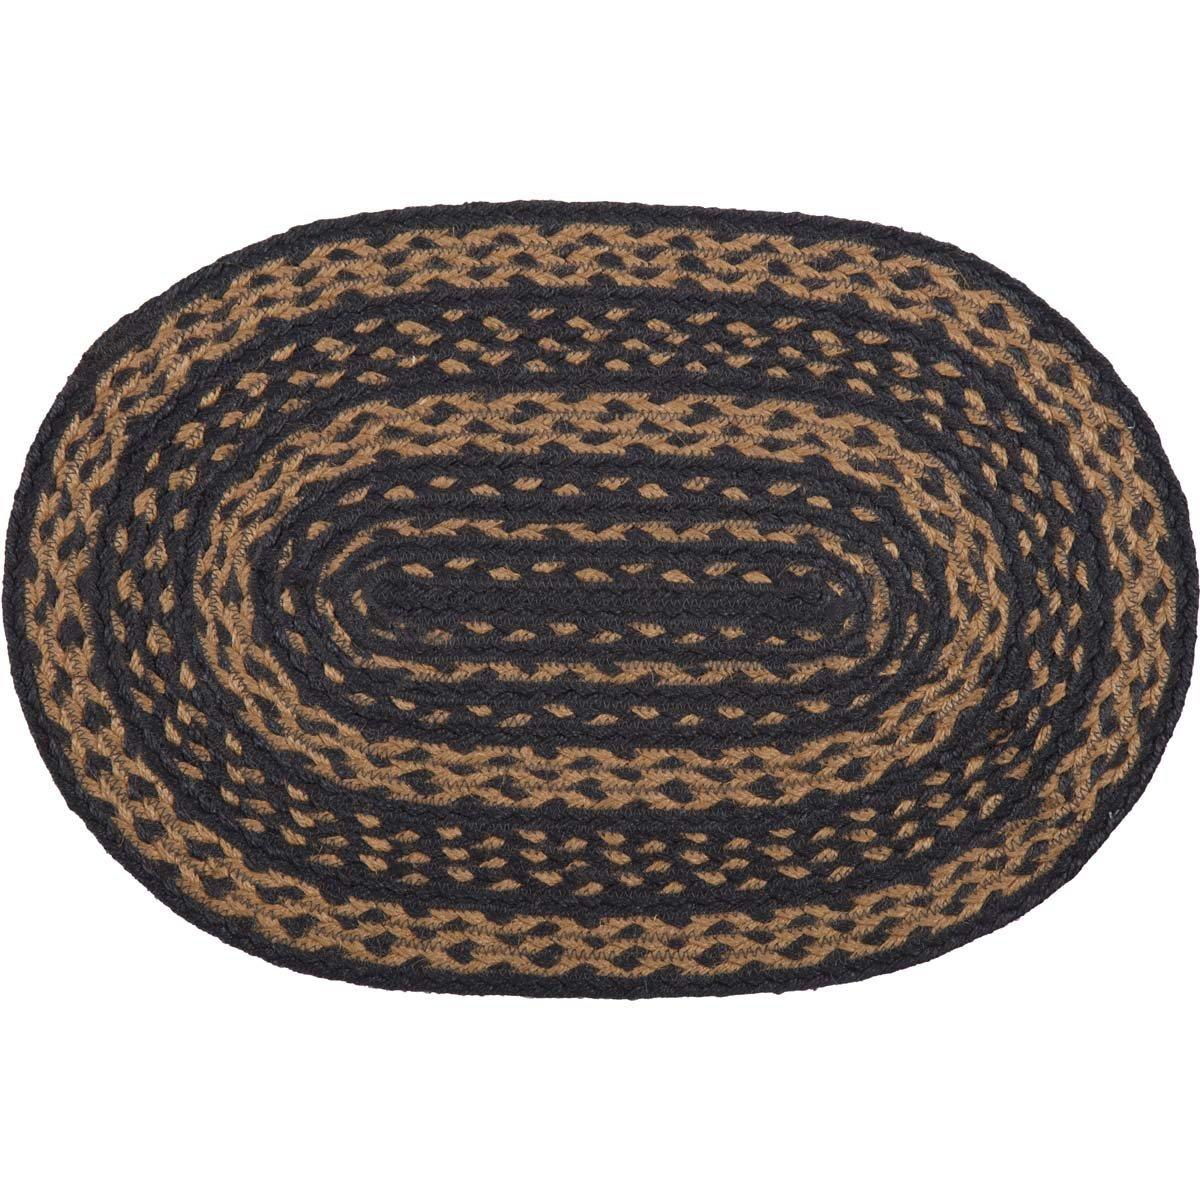 Patriot Navy Jute Placemat Set of 6 12x18